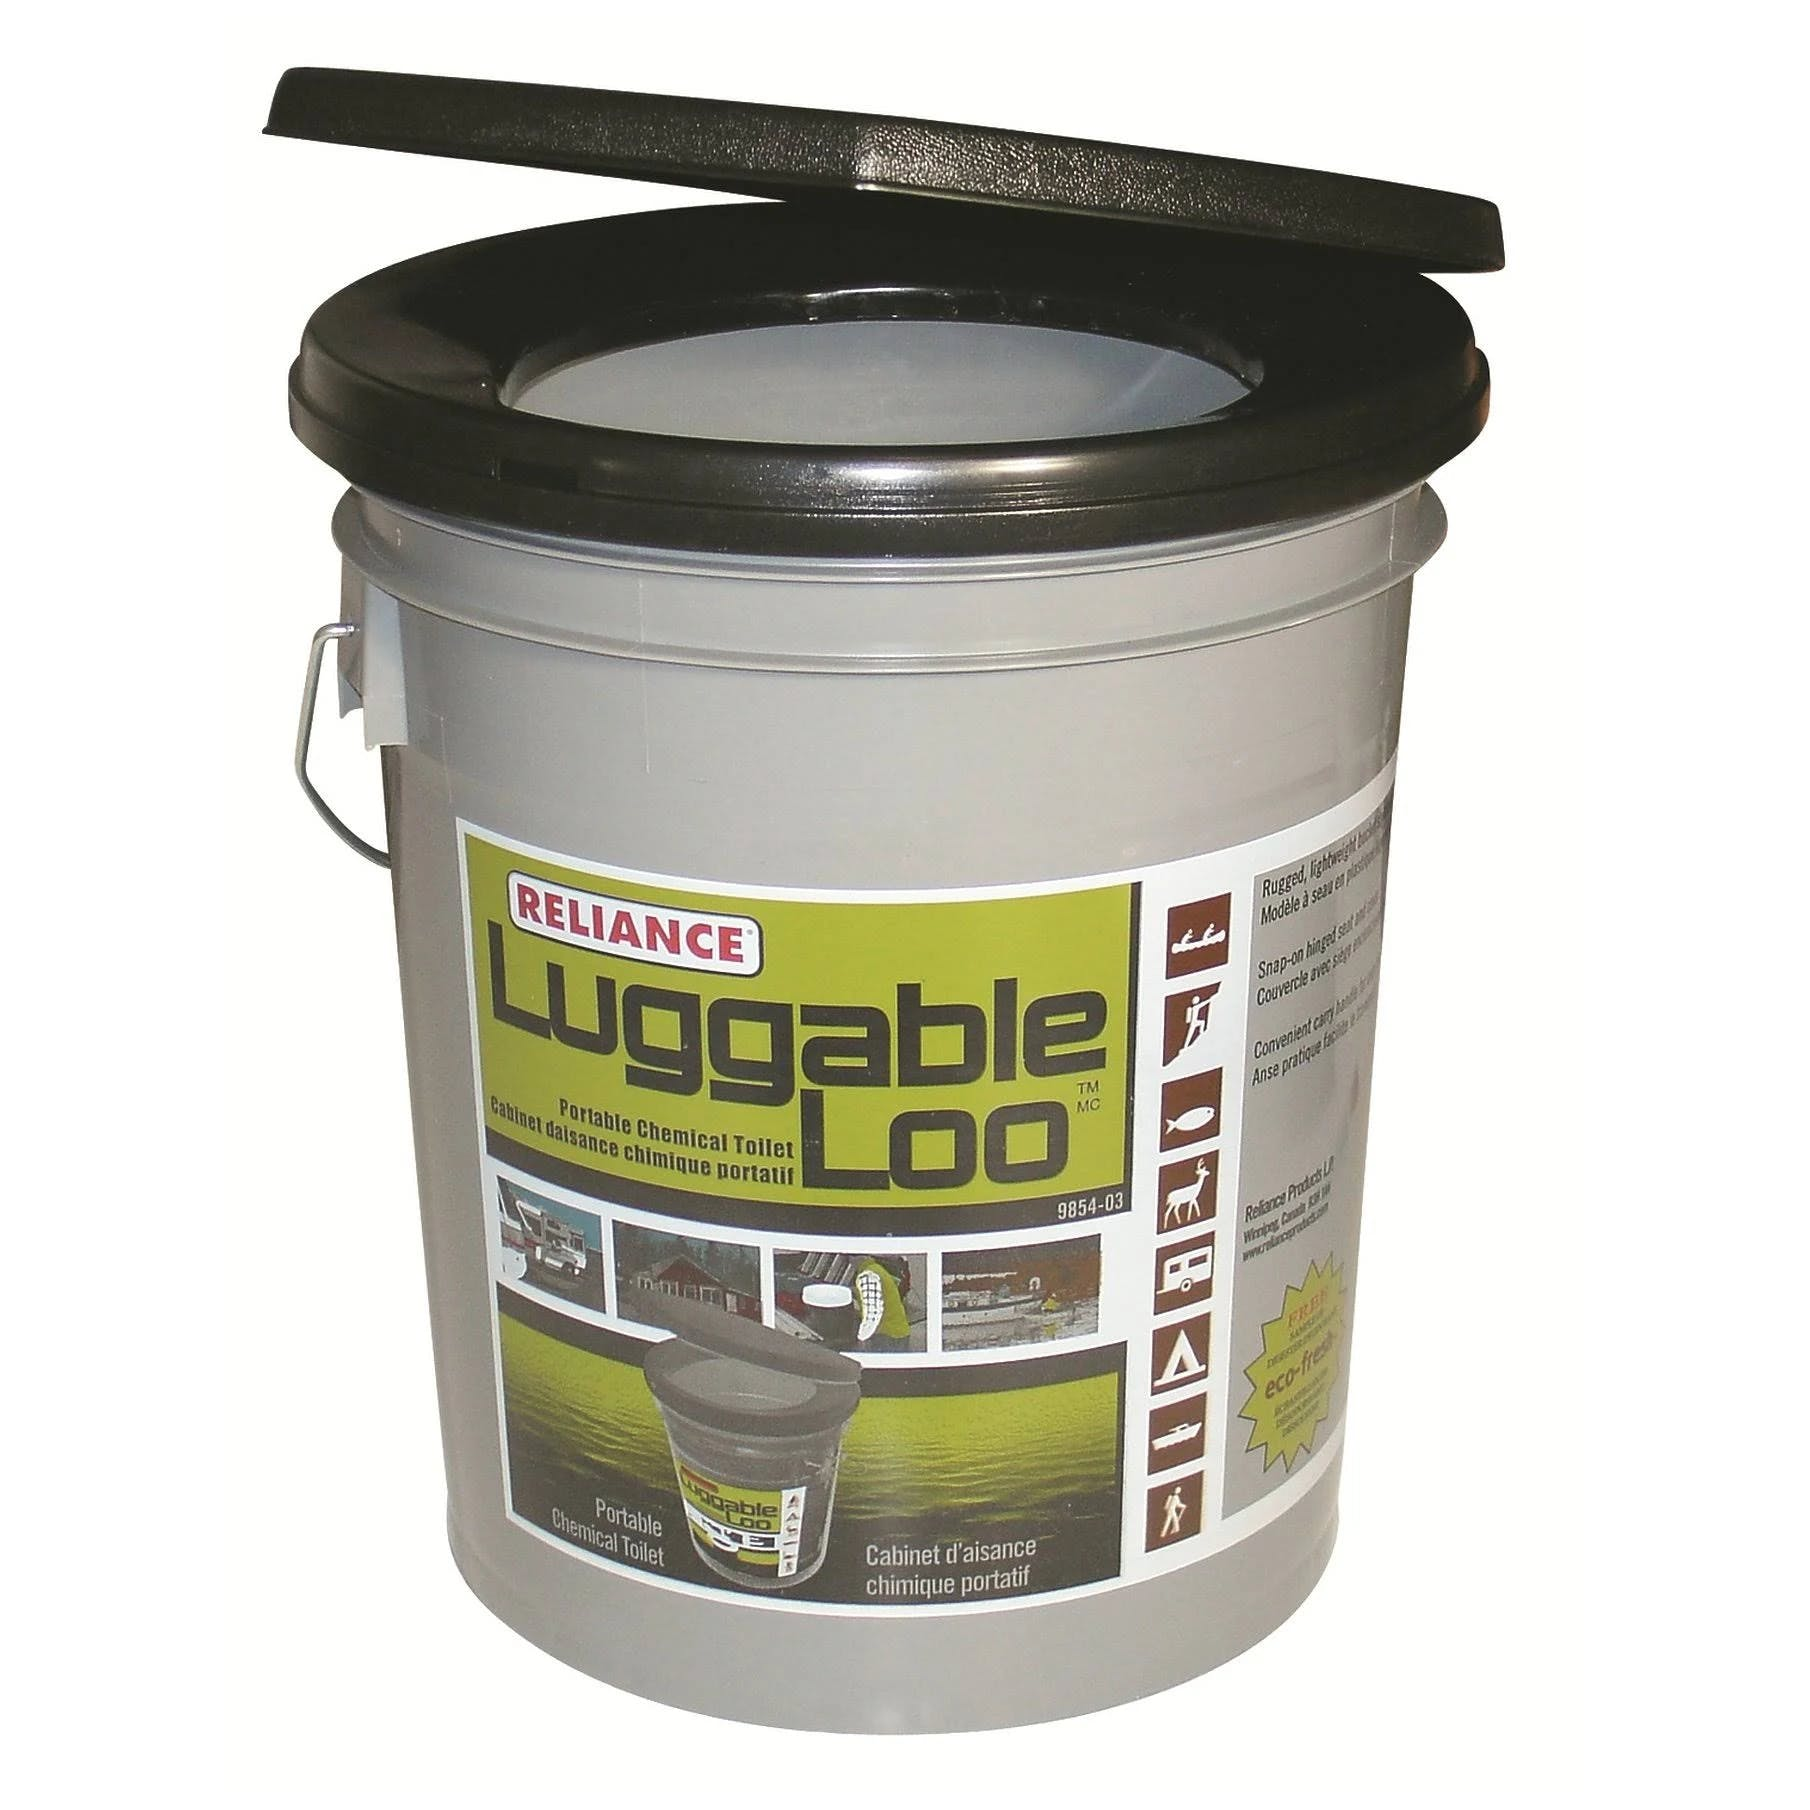 Reliance Luggable Loo Portable Toilet, Gray